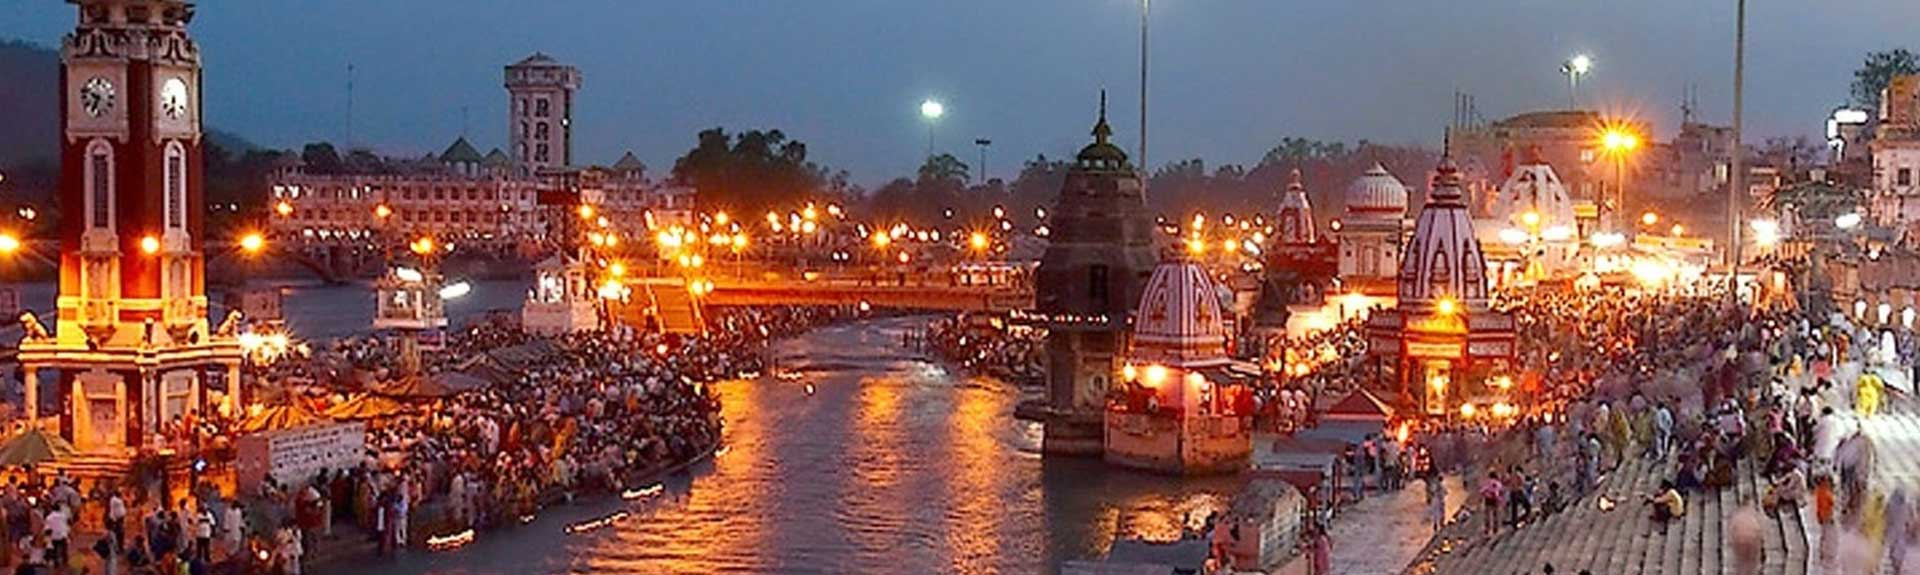 Affordable Chardham yatra package from Haridwar